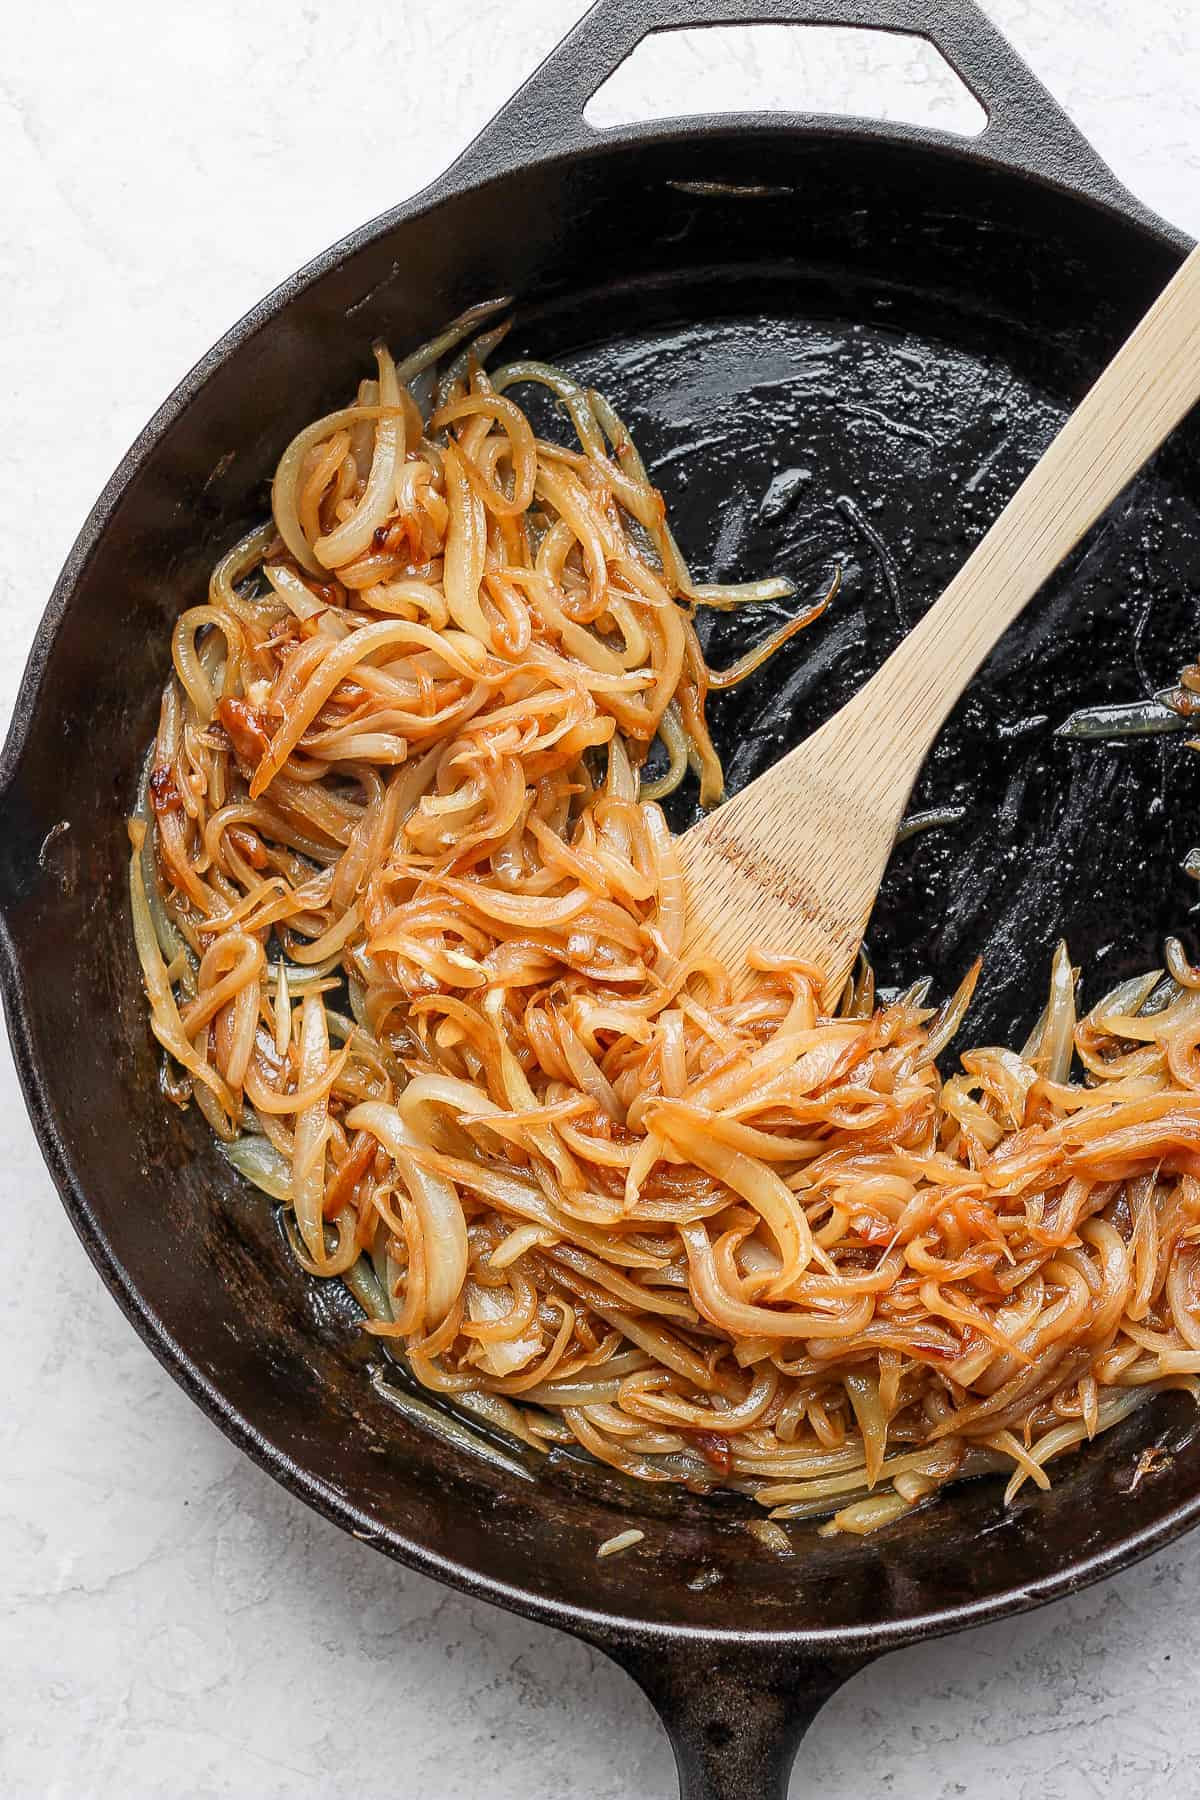 Caramelizing onions on a cast iron skillet with wooden skillet